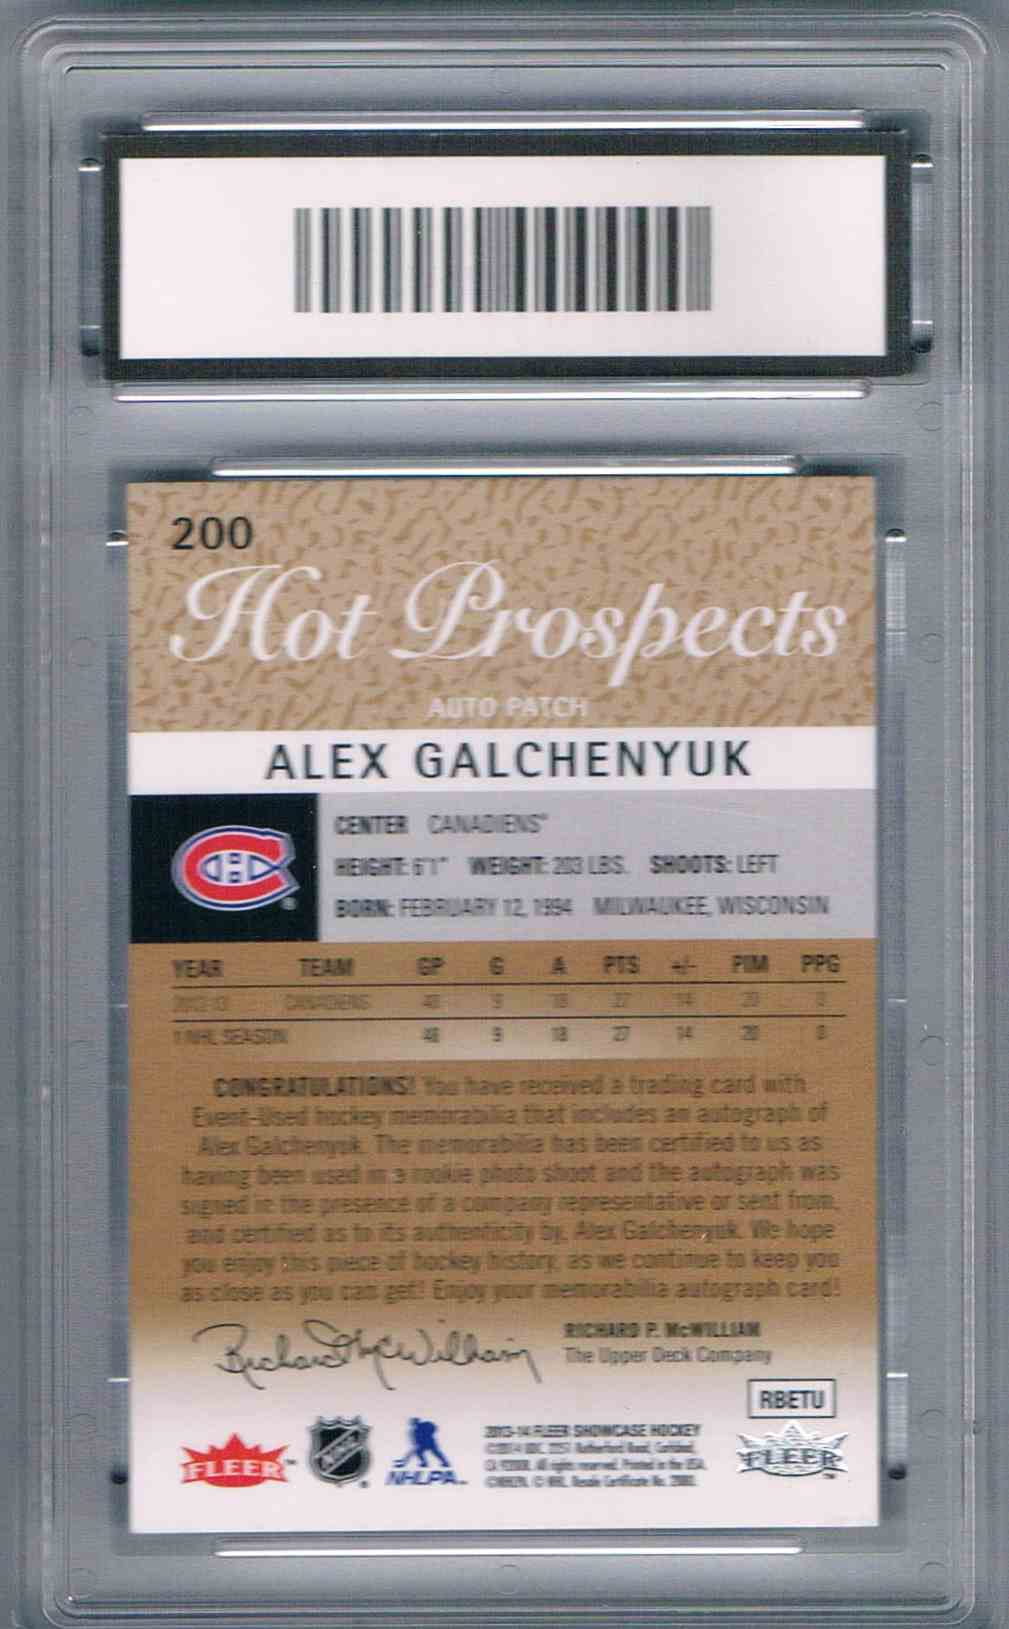 2013-14 Upper Deck Fleer Showcase Rookie Jersey Autograph Alex Galchenyuk #200 card back image